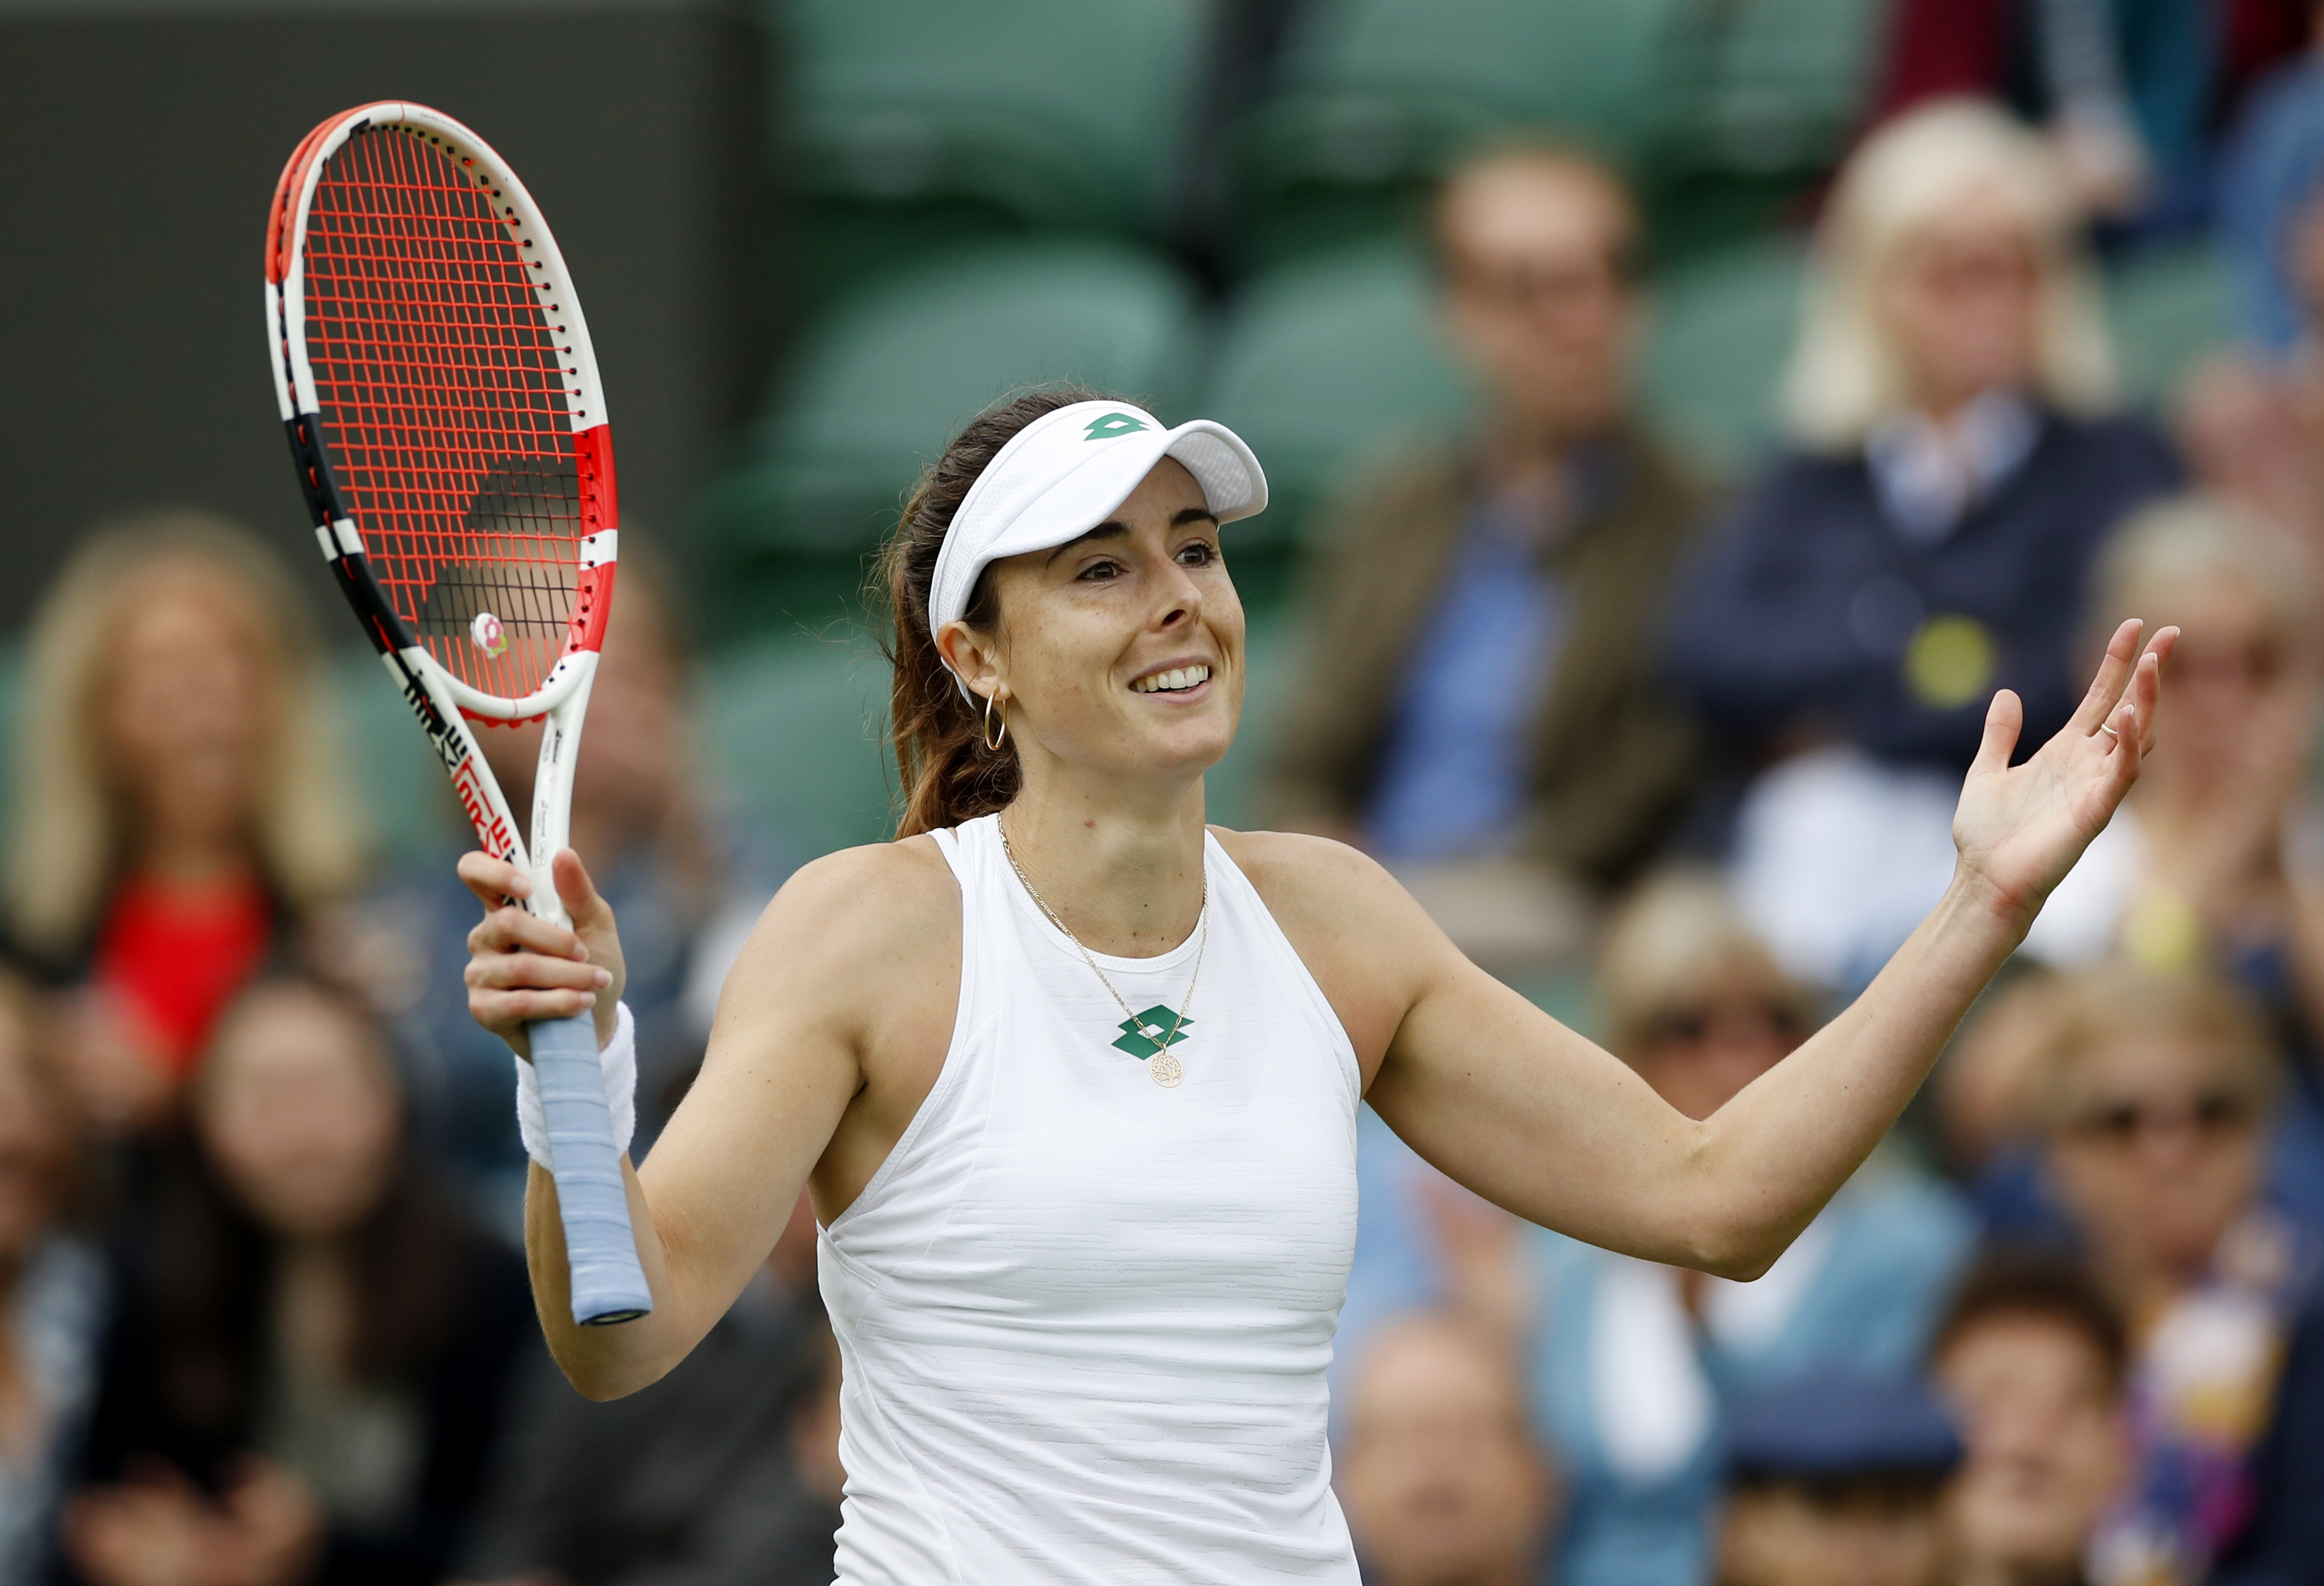 FILE PHOTO-Tennis - Wimbledon - All England Lawn Tennis and Croquet Club, London, Britain - June 30, 2021 France's Alize Cornet celebrates winning her first round match against Canada's Bianca Andreescu REUTERS/Paul Childs